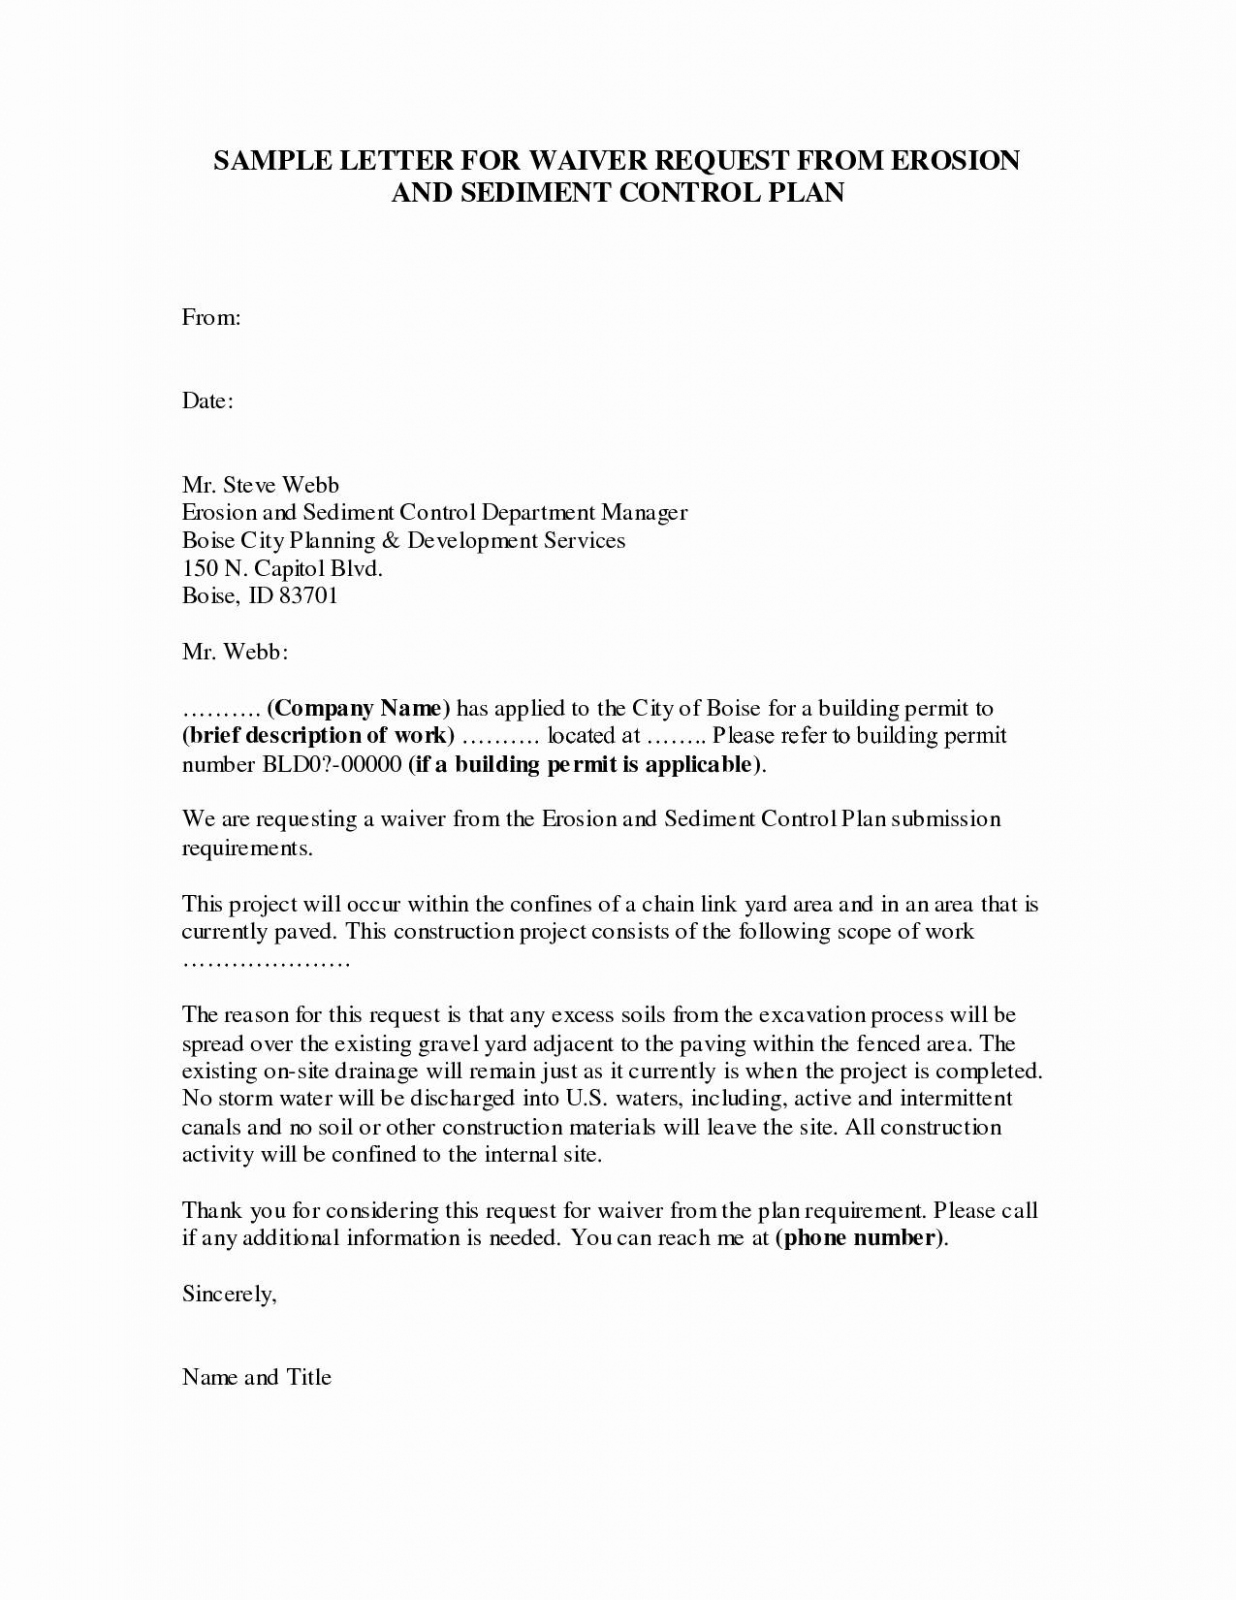 lien demand letter template example-Final Lien Waiver Template New Sample Waiver Letter Luxury Group Lots 0a 0b 0c 0d – 6-l